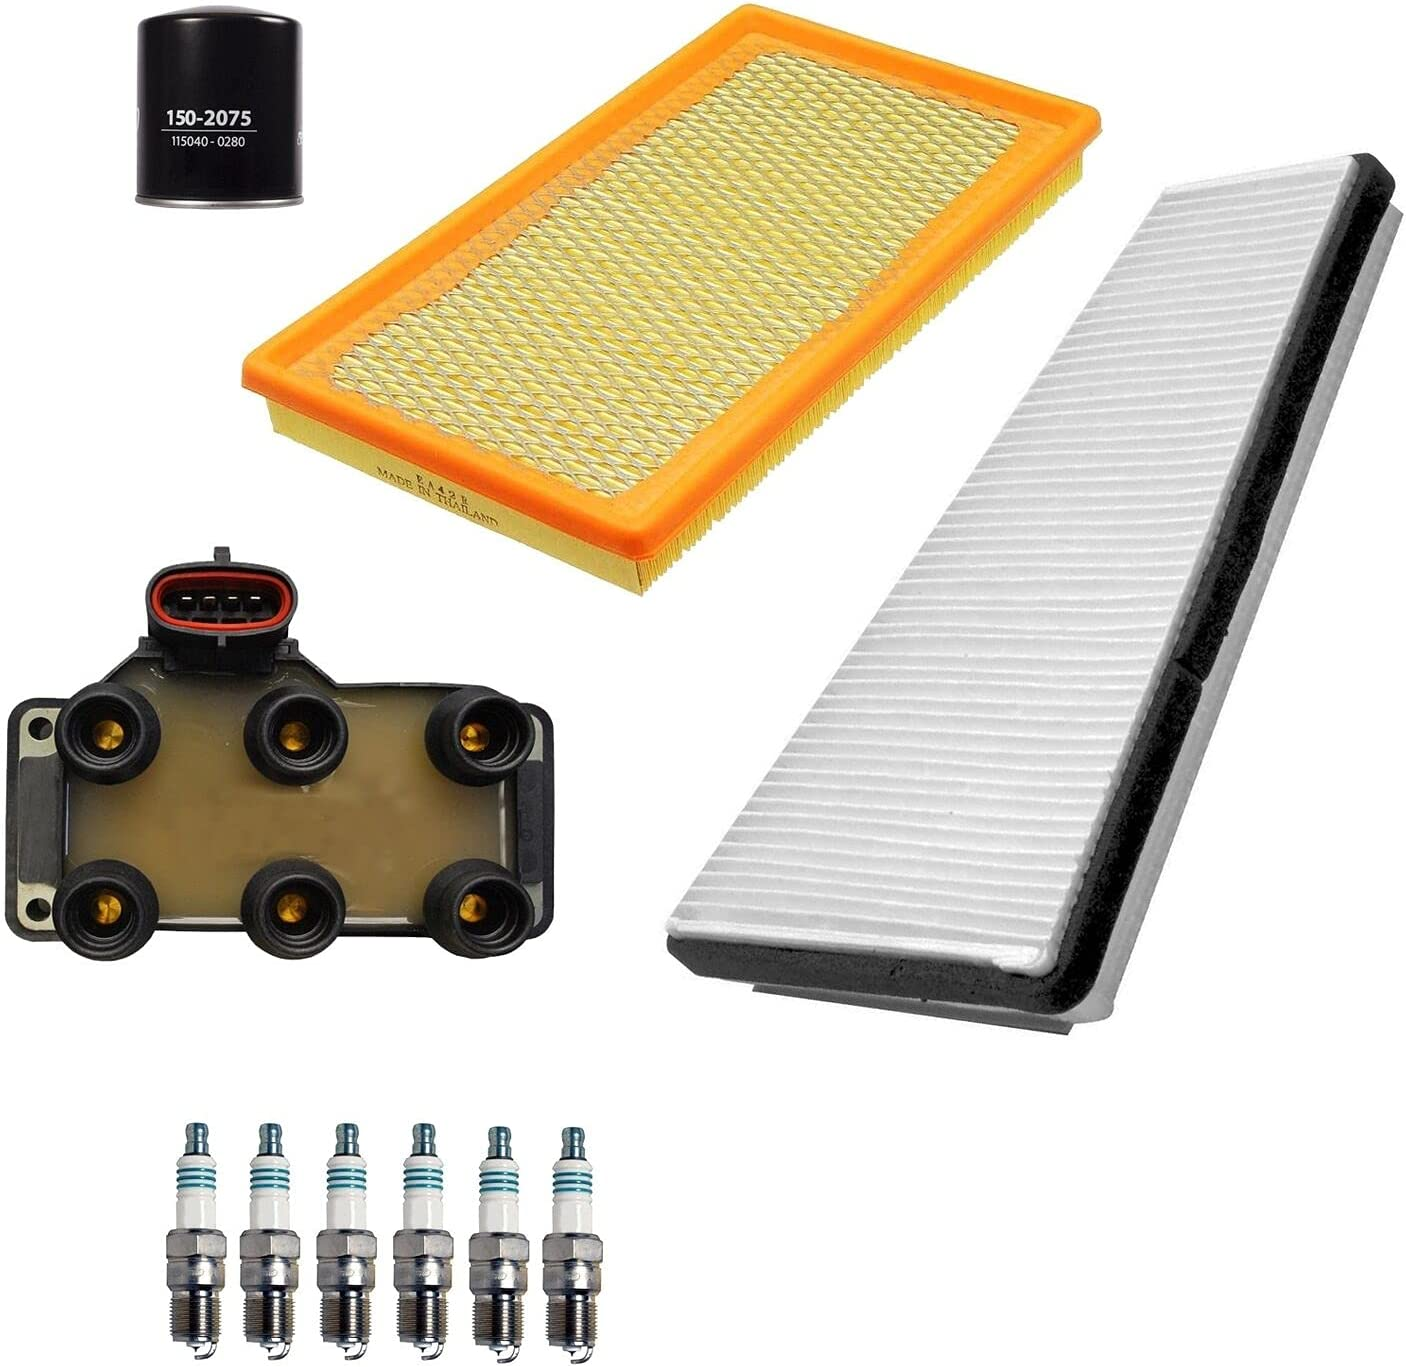 Ignition Tune Cheap mail order shopping Up 6 Iridium Power Spark with Compatible Plugs online shopping kit